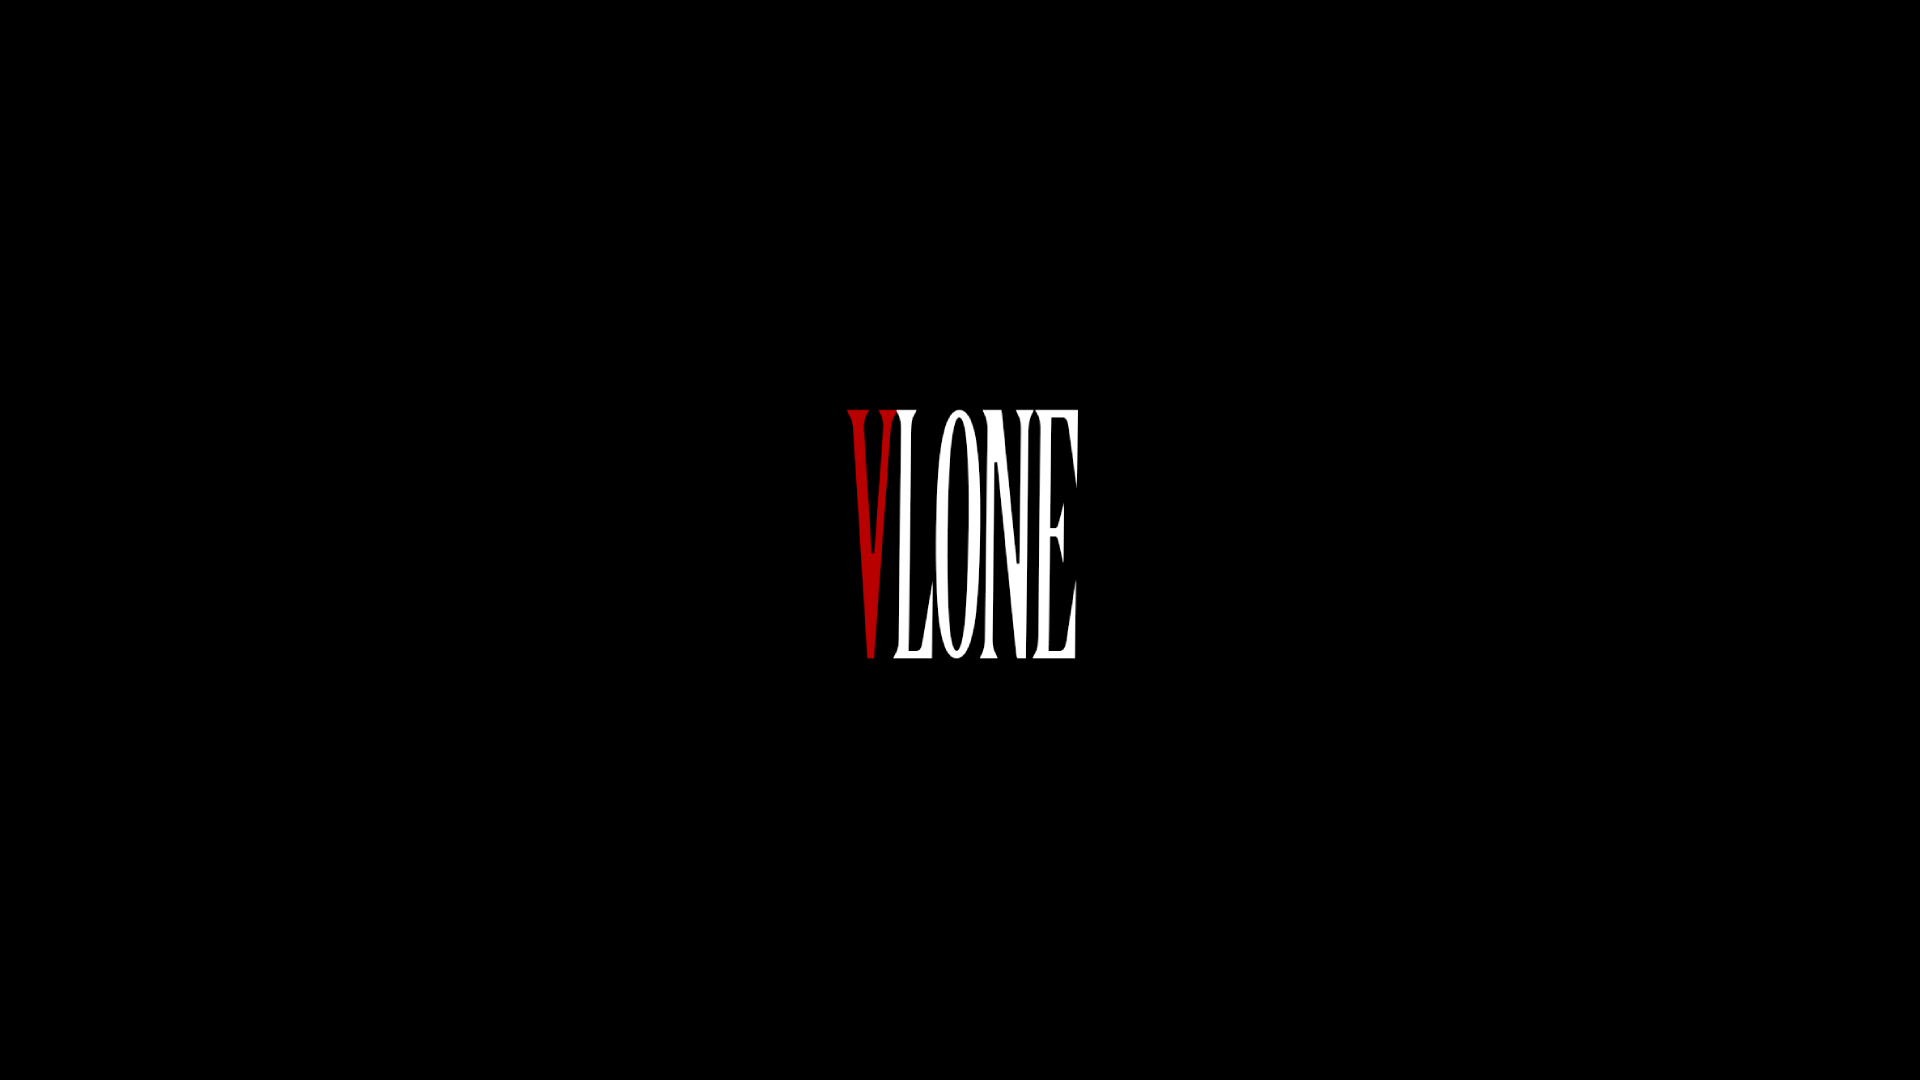 Couldn't find VLONE desktop wallpapers online so I made this one